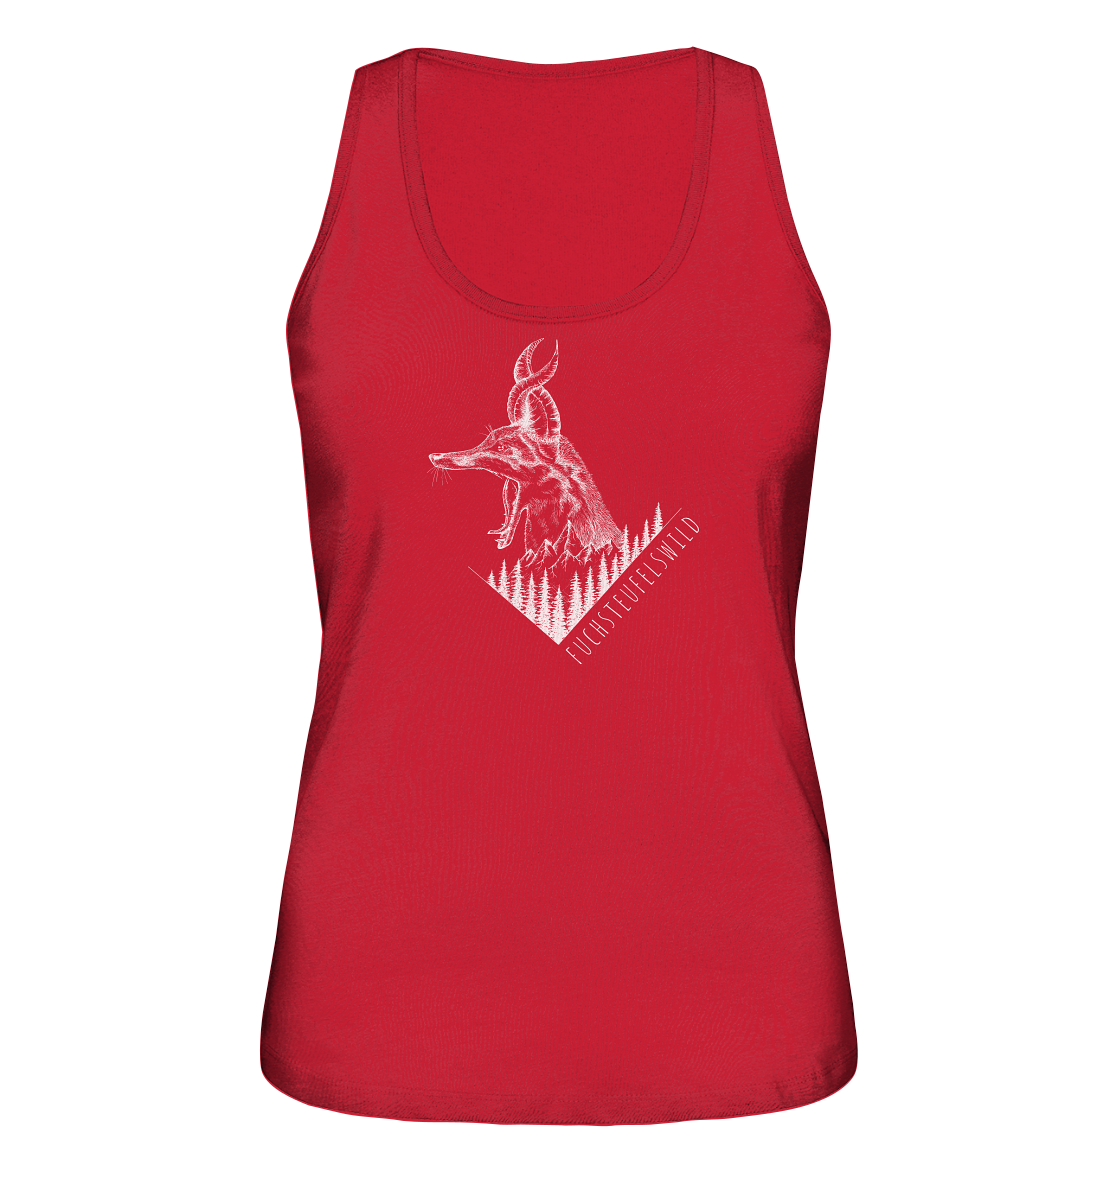 front-ladies-organic-tank-top-cb1f34-1116x-12.png